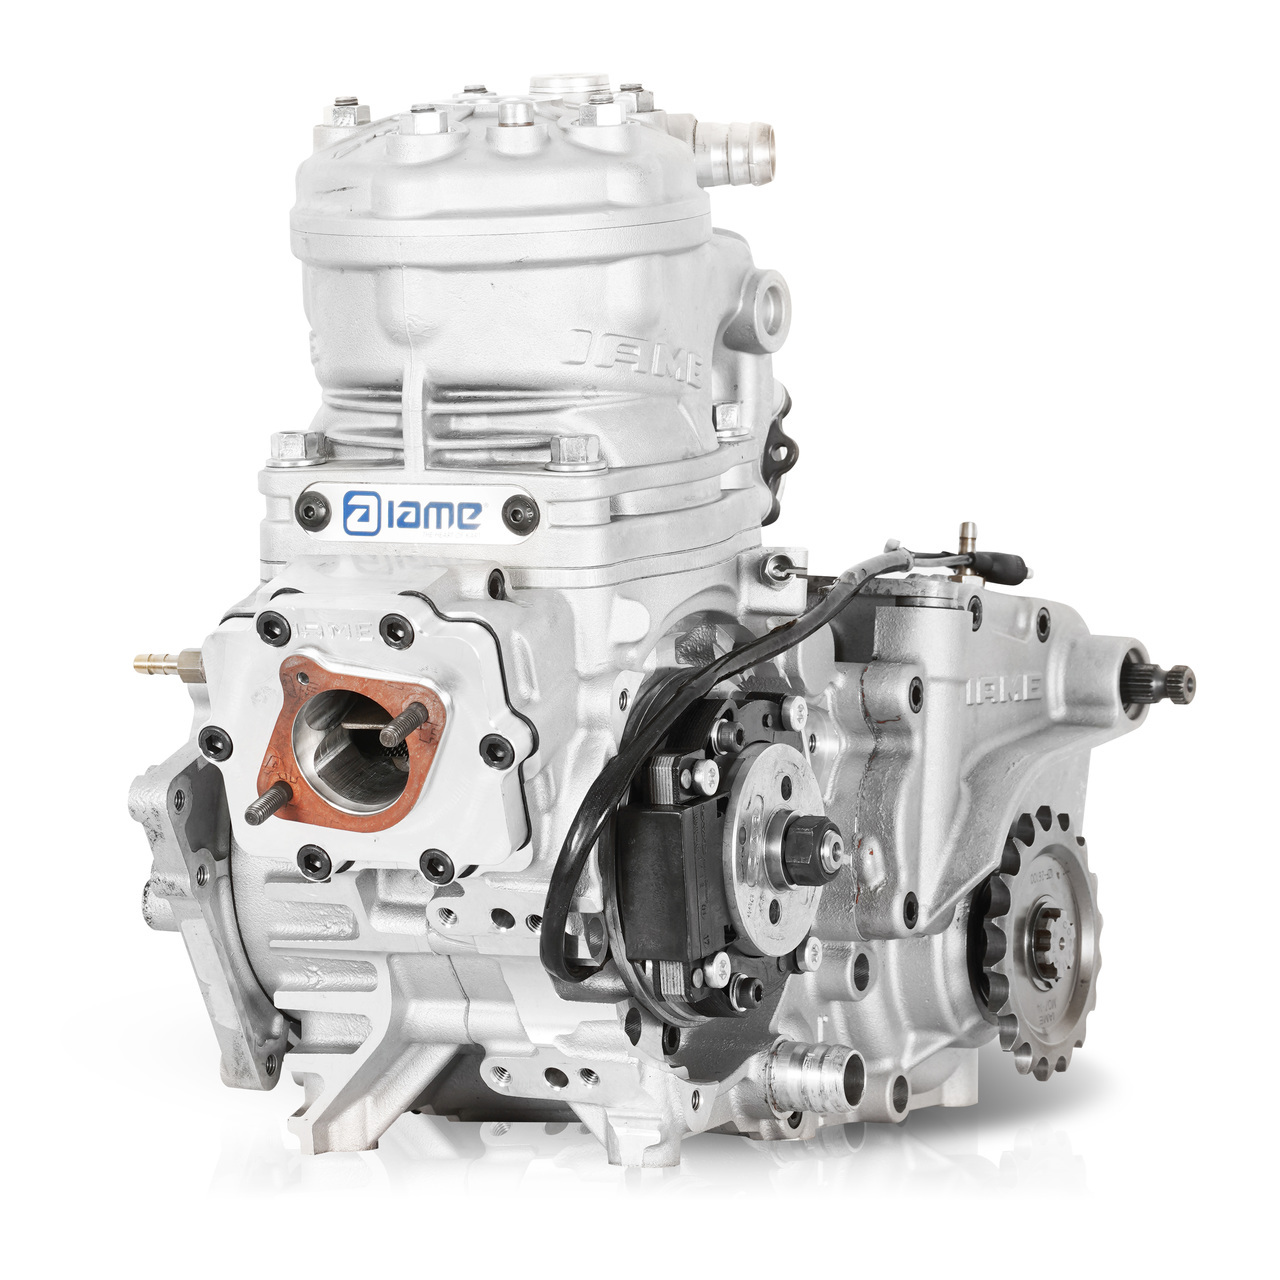 IAME SSE175cc Shifter Engine Package